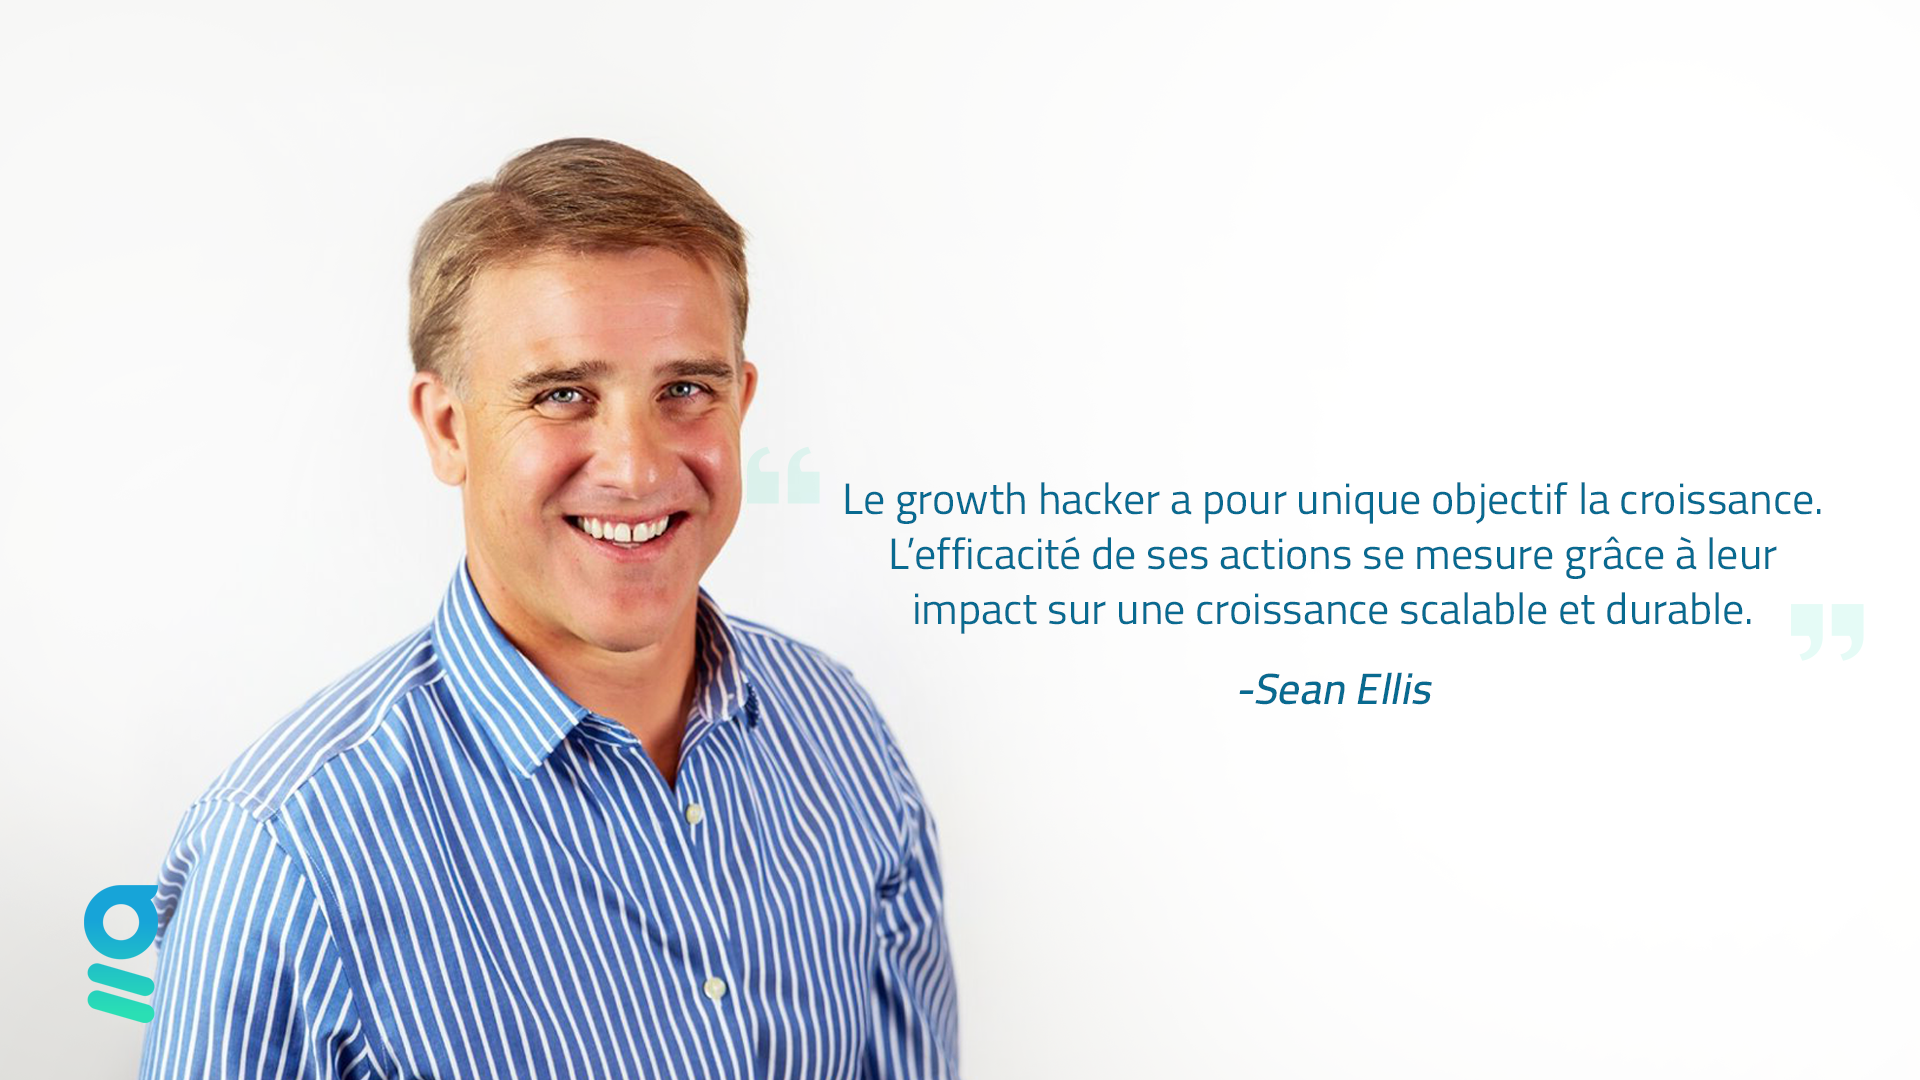 quote Sean Ellis on the Gowth Hacking